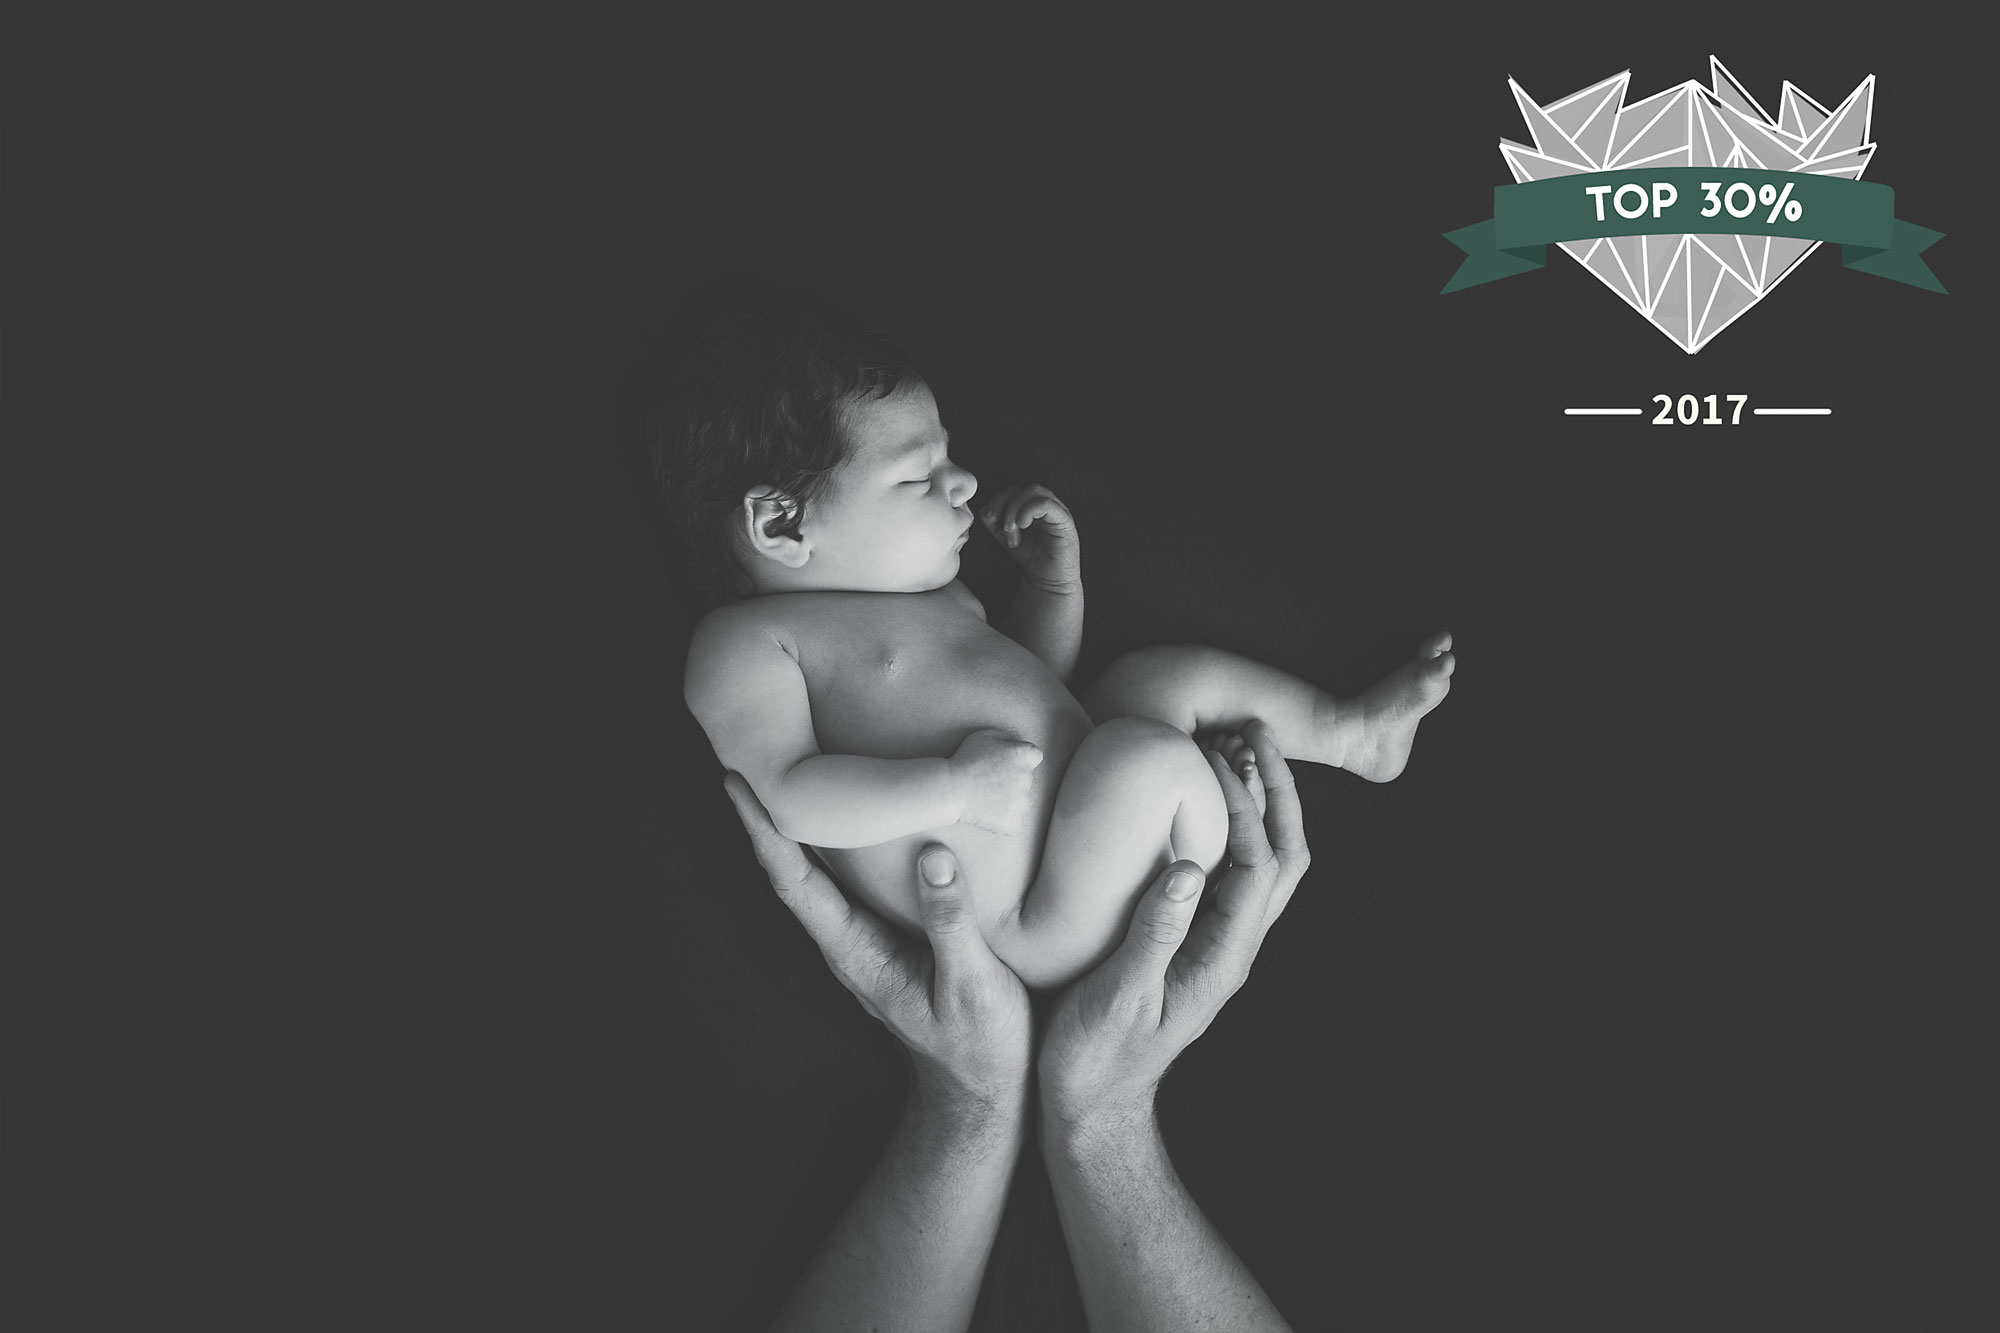 Photo Contest Shoot and Share Newborn Photography Black and white hands holding